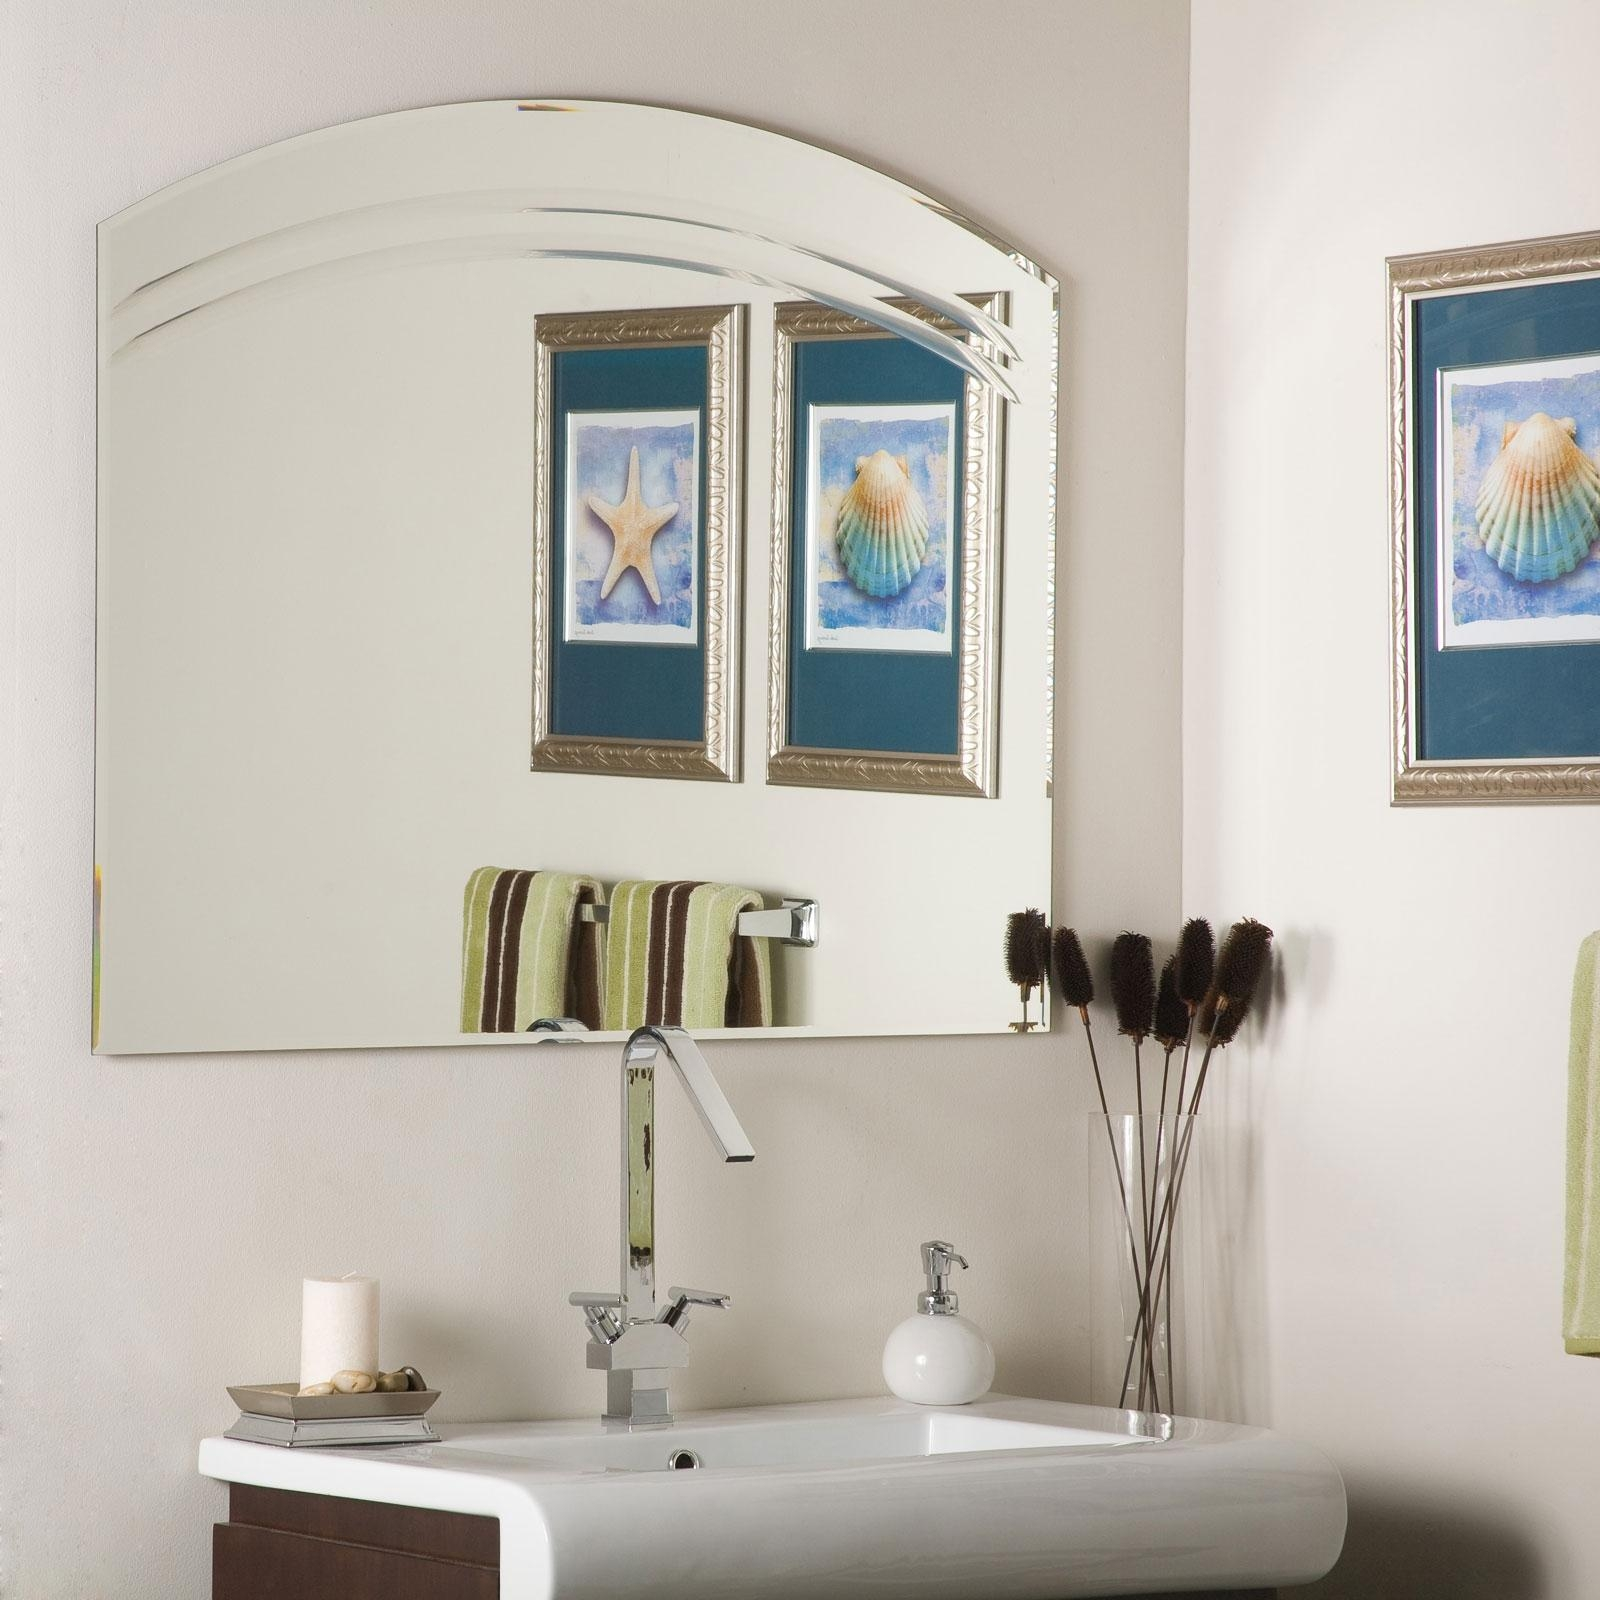 Angel Decor For Bathroom • Bathroom Decor Inside Extra Wide Bathroom Mirrors (Image 2 of 20)